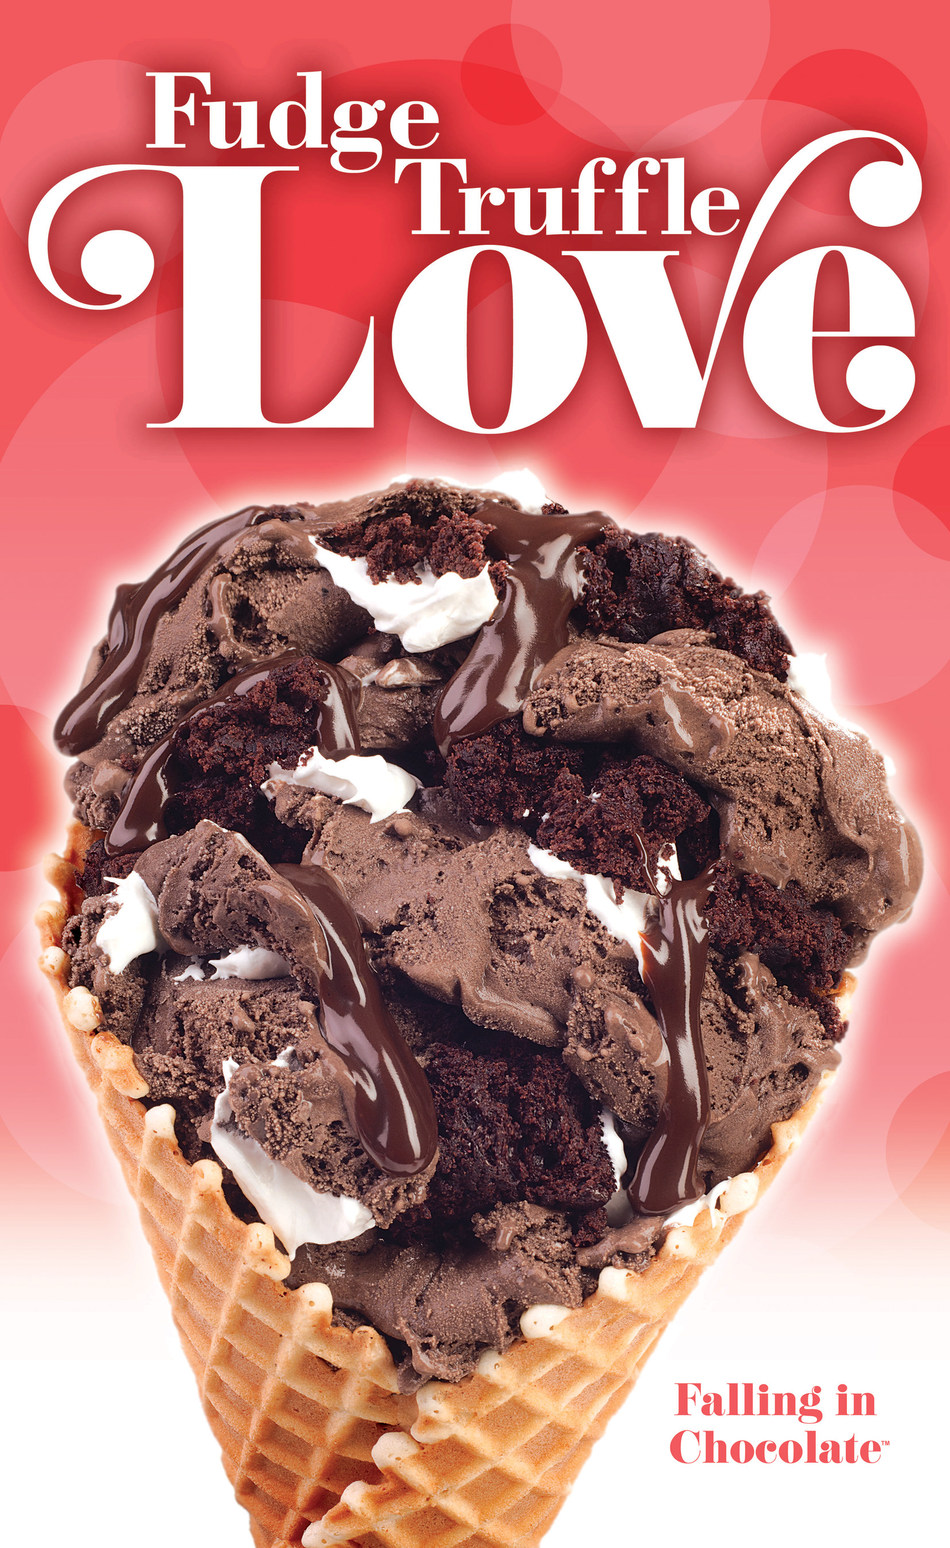 Chocolate lovers will delight in the return of Cold Stone Creamery's Fudge Truffle Ice Cream, along with the Fudge Truffle Decadence(TM) cake and the Fudge Truffle Frappe, available for a limited time only.